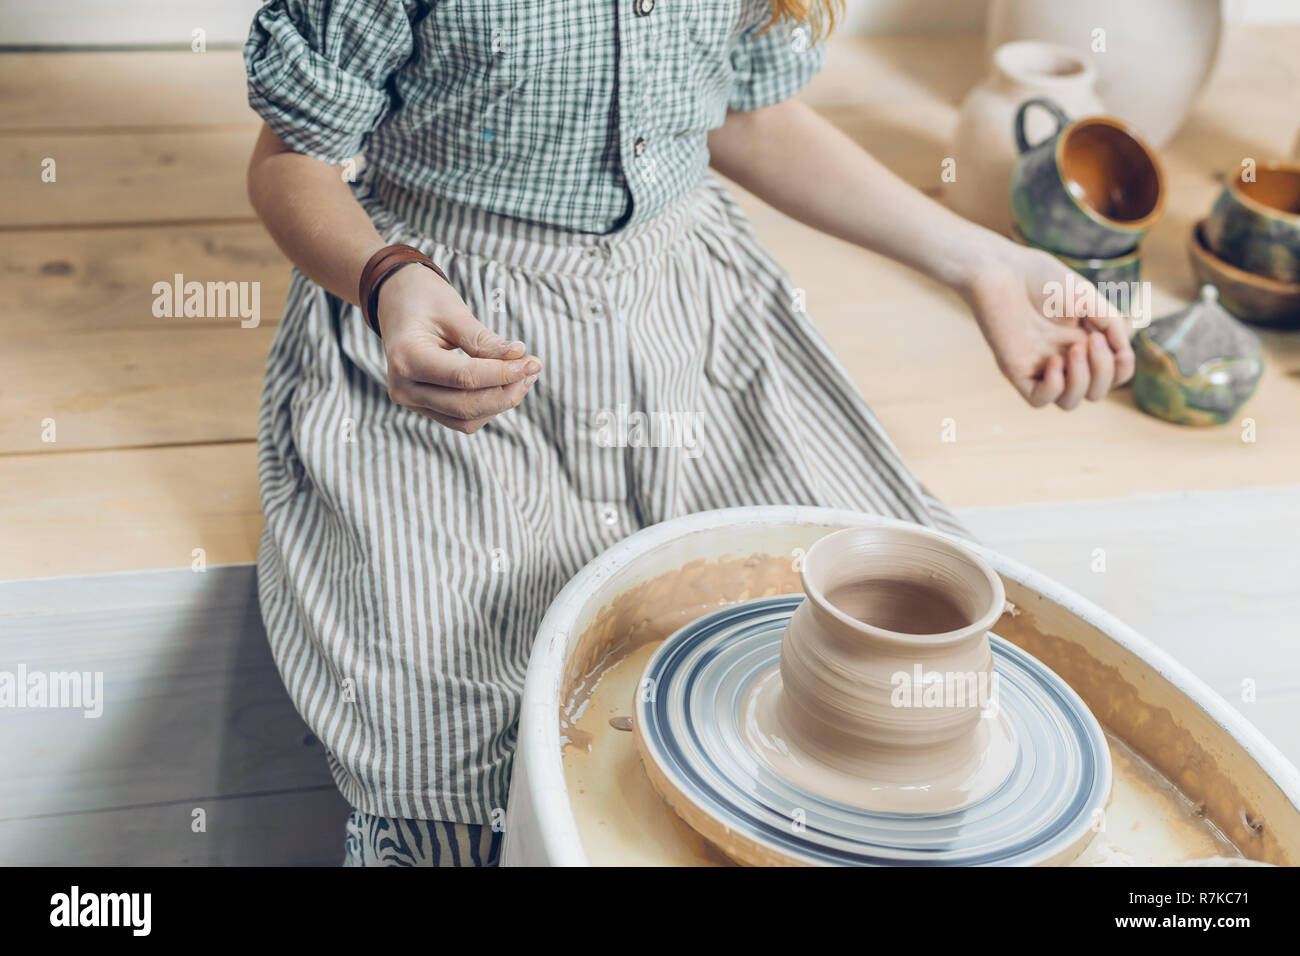 ready handmade pottery. woman has finished to make a pot - Stock Image